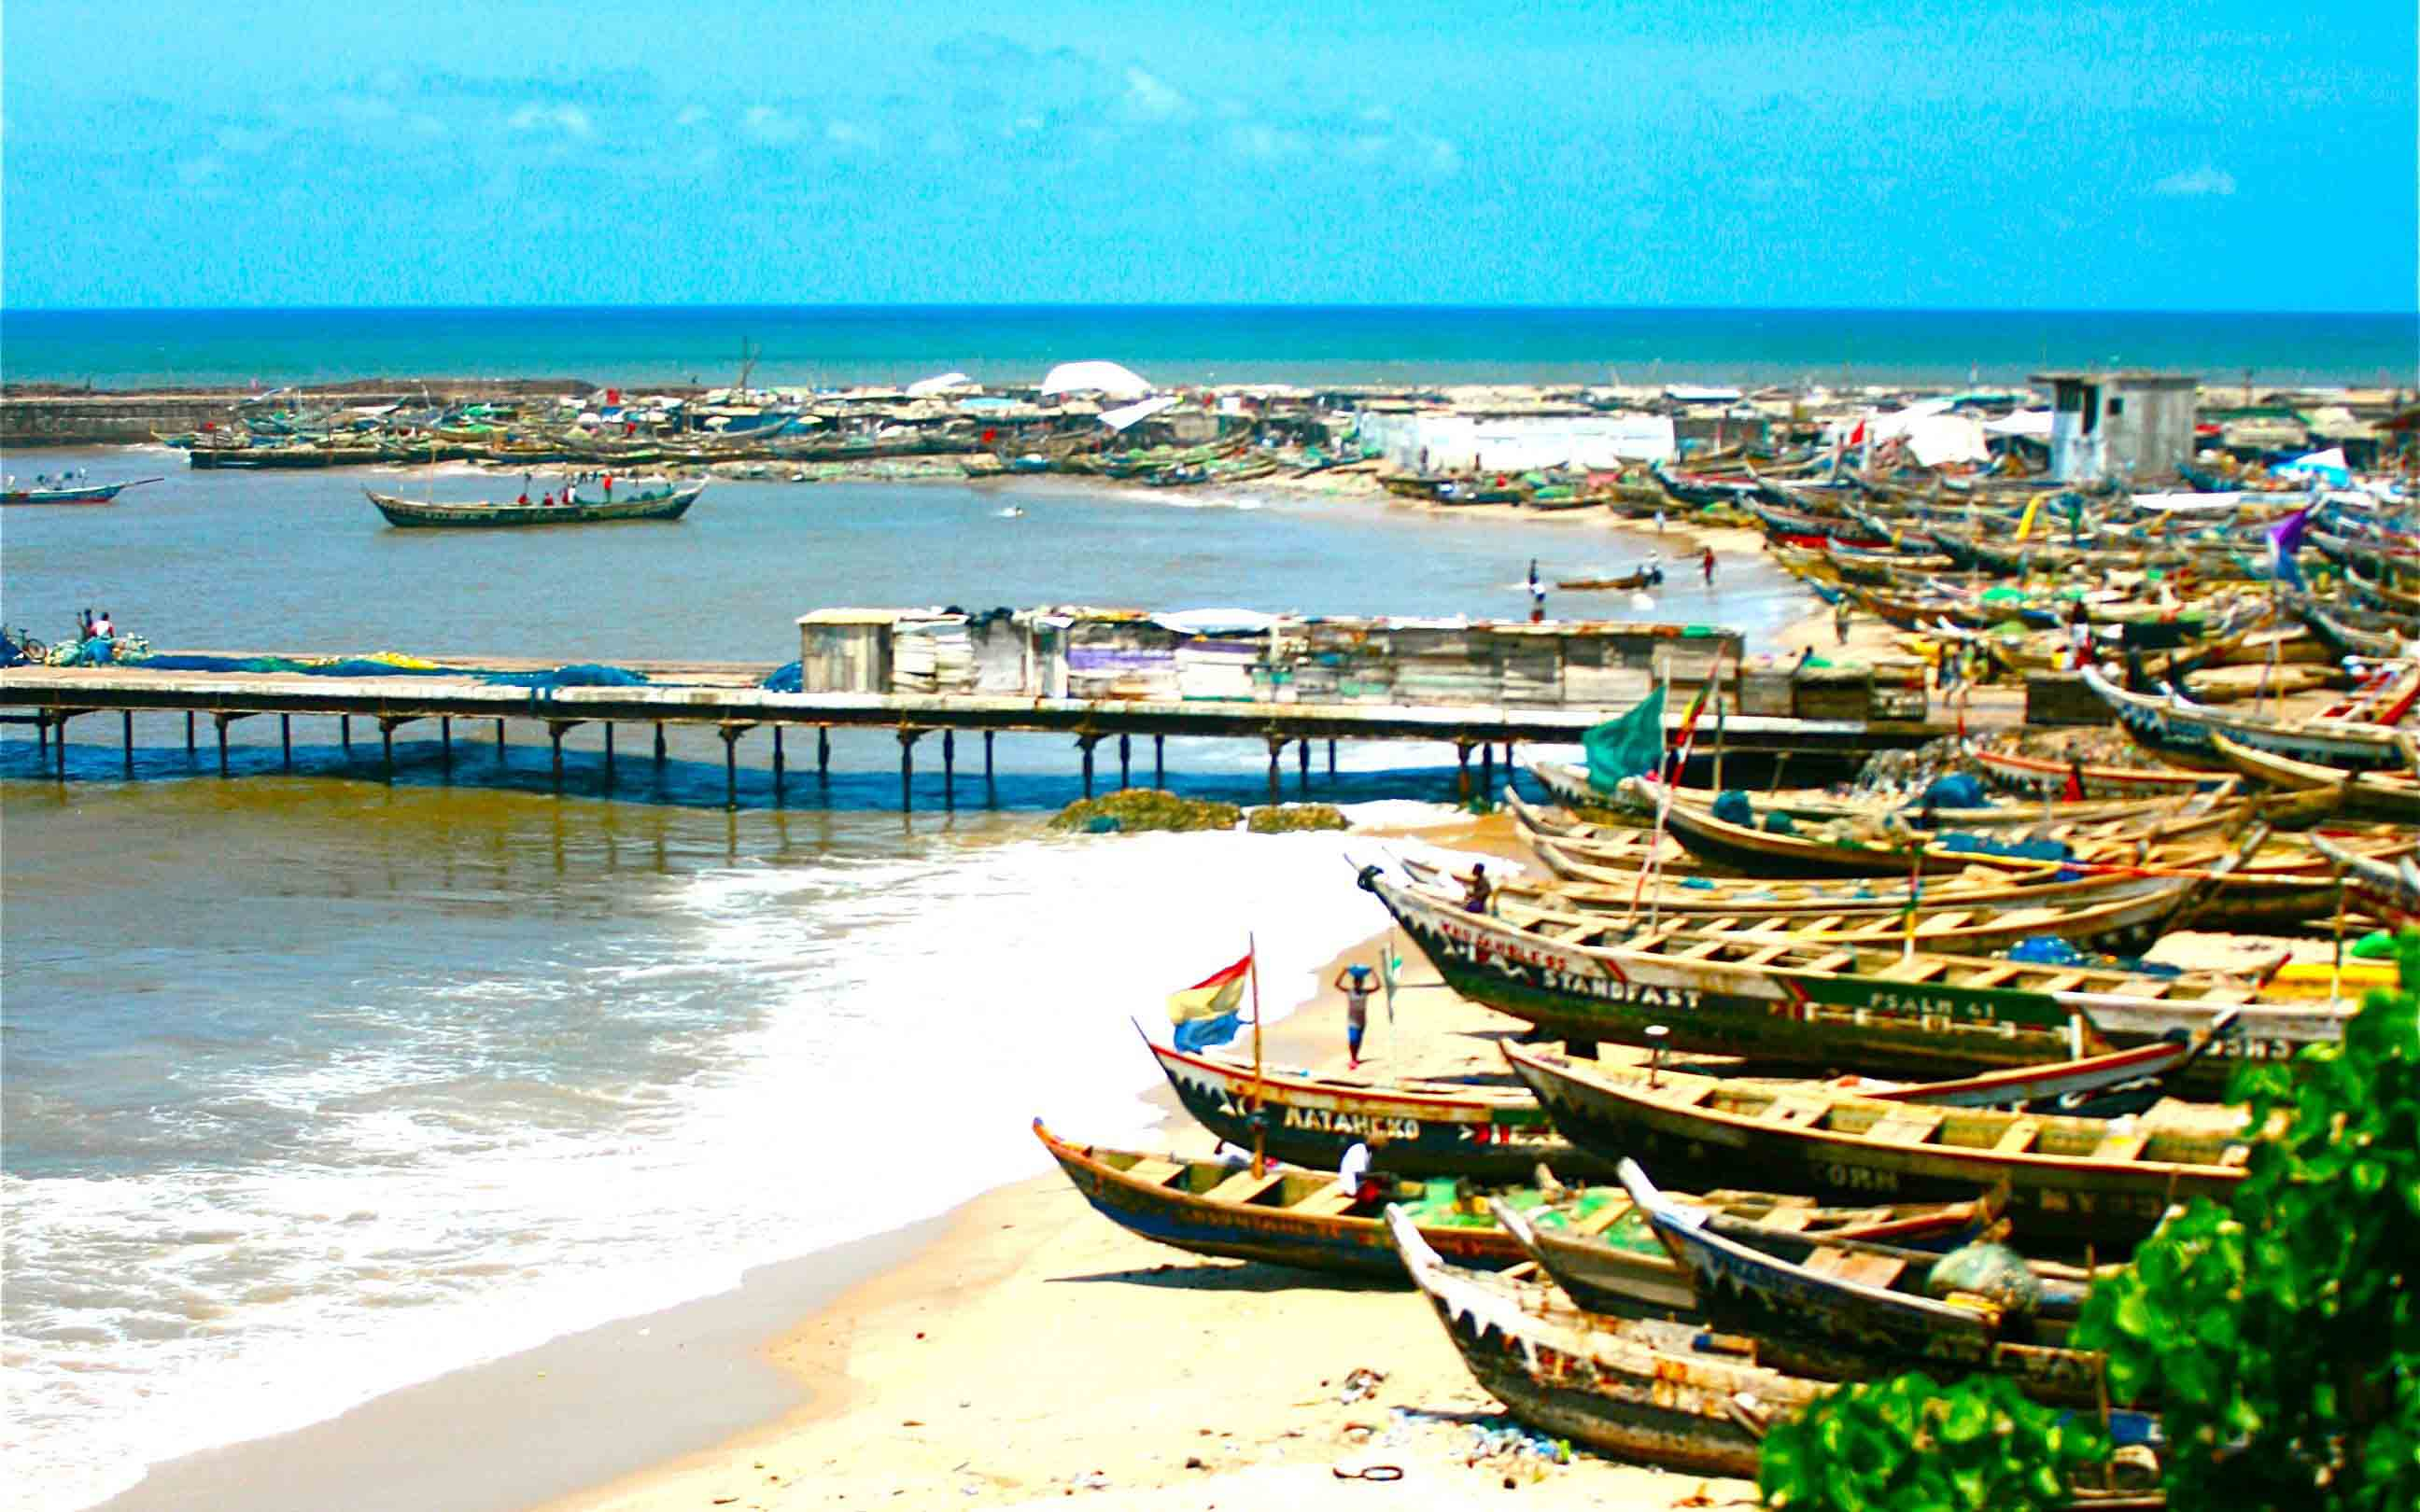 Ghlisting Hotels in Ghana, Events in Ghana |   accra1